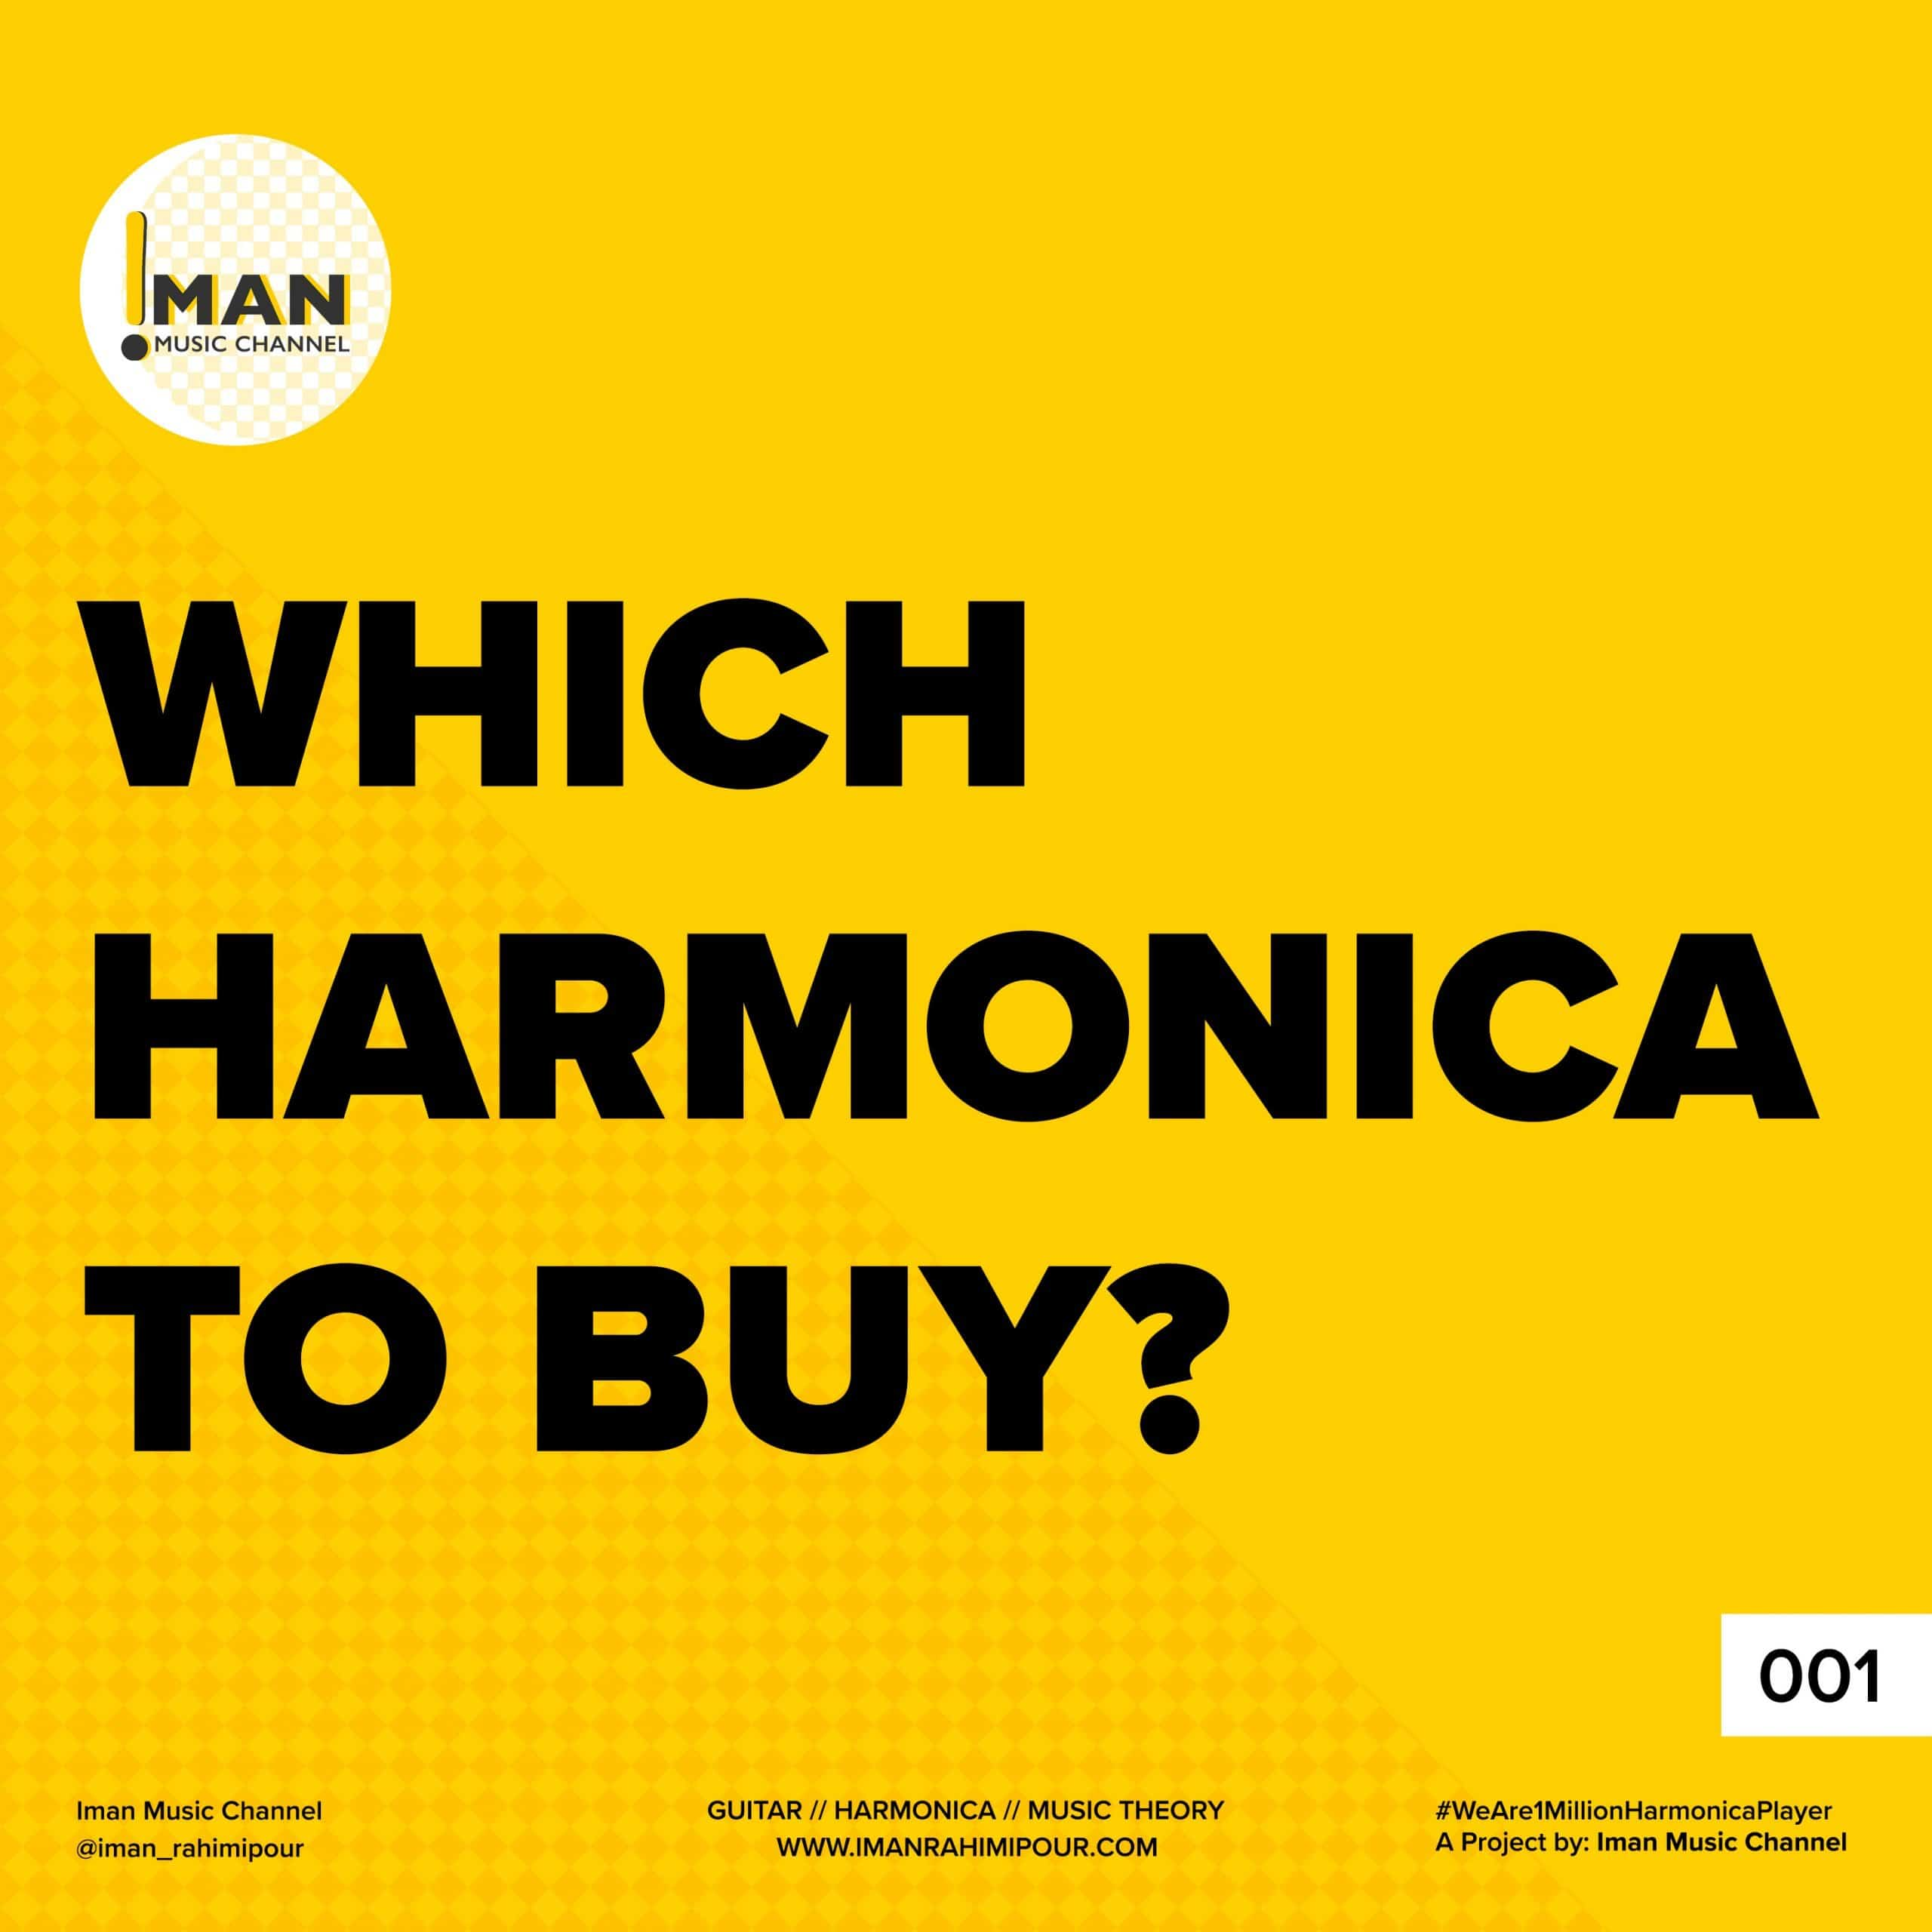 Which Harmonica to buy